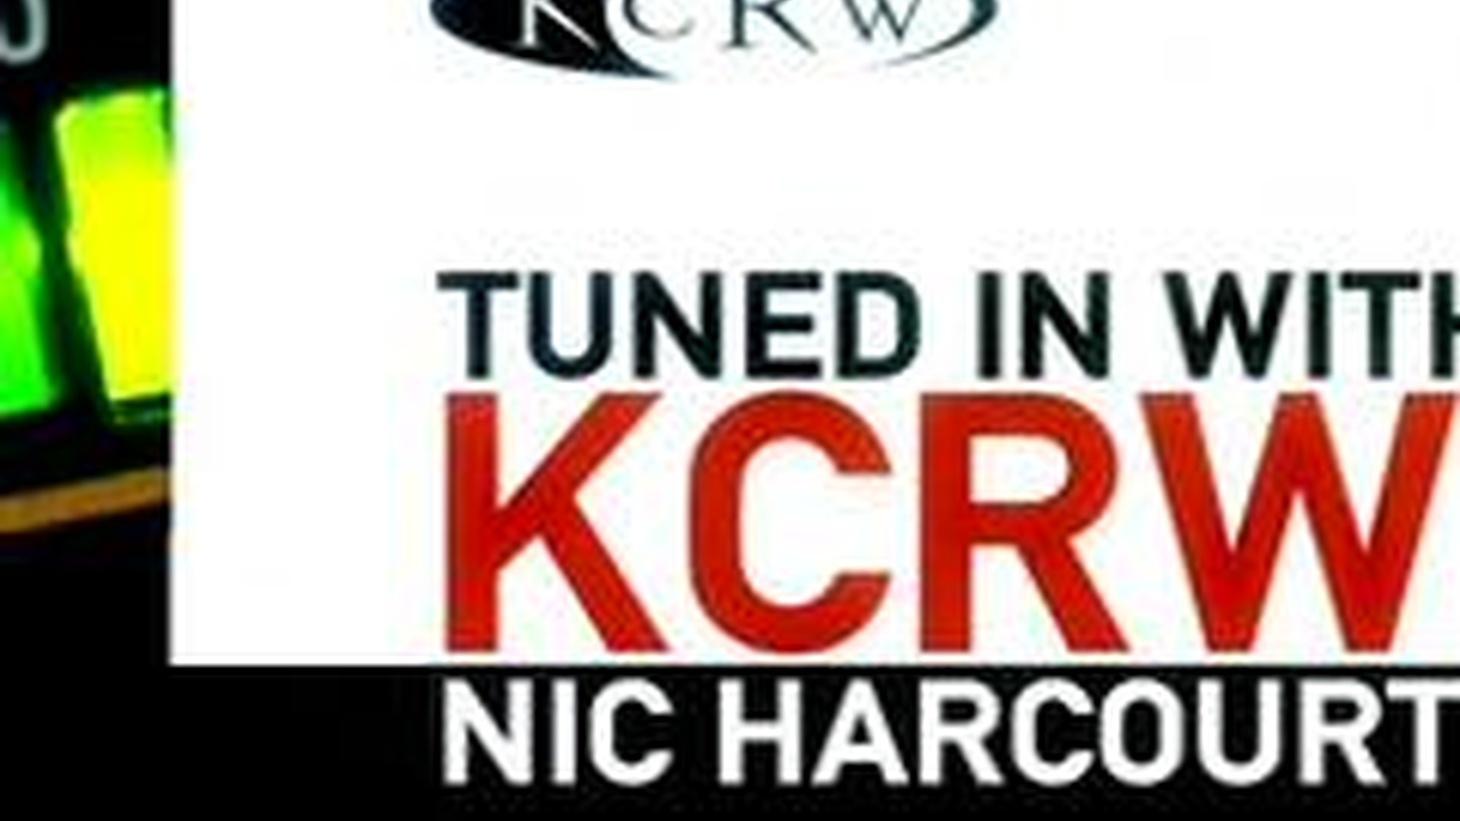 Nic Harcourt gives a weekly look at the music he is featuring on KCRW. In this episode of Tuned In with KCRW's Nic Harcourt, Nic shares tracks from new albums by Dr. Dog (FATE), Old Crow Medicine Show (TENNESSEE PUSHER)...